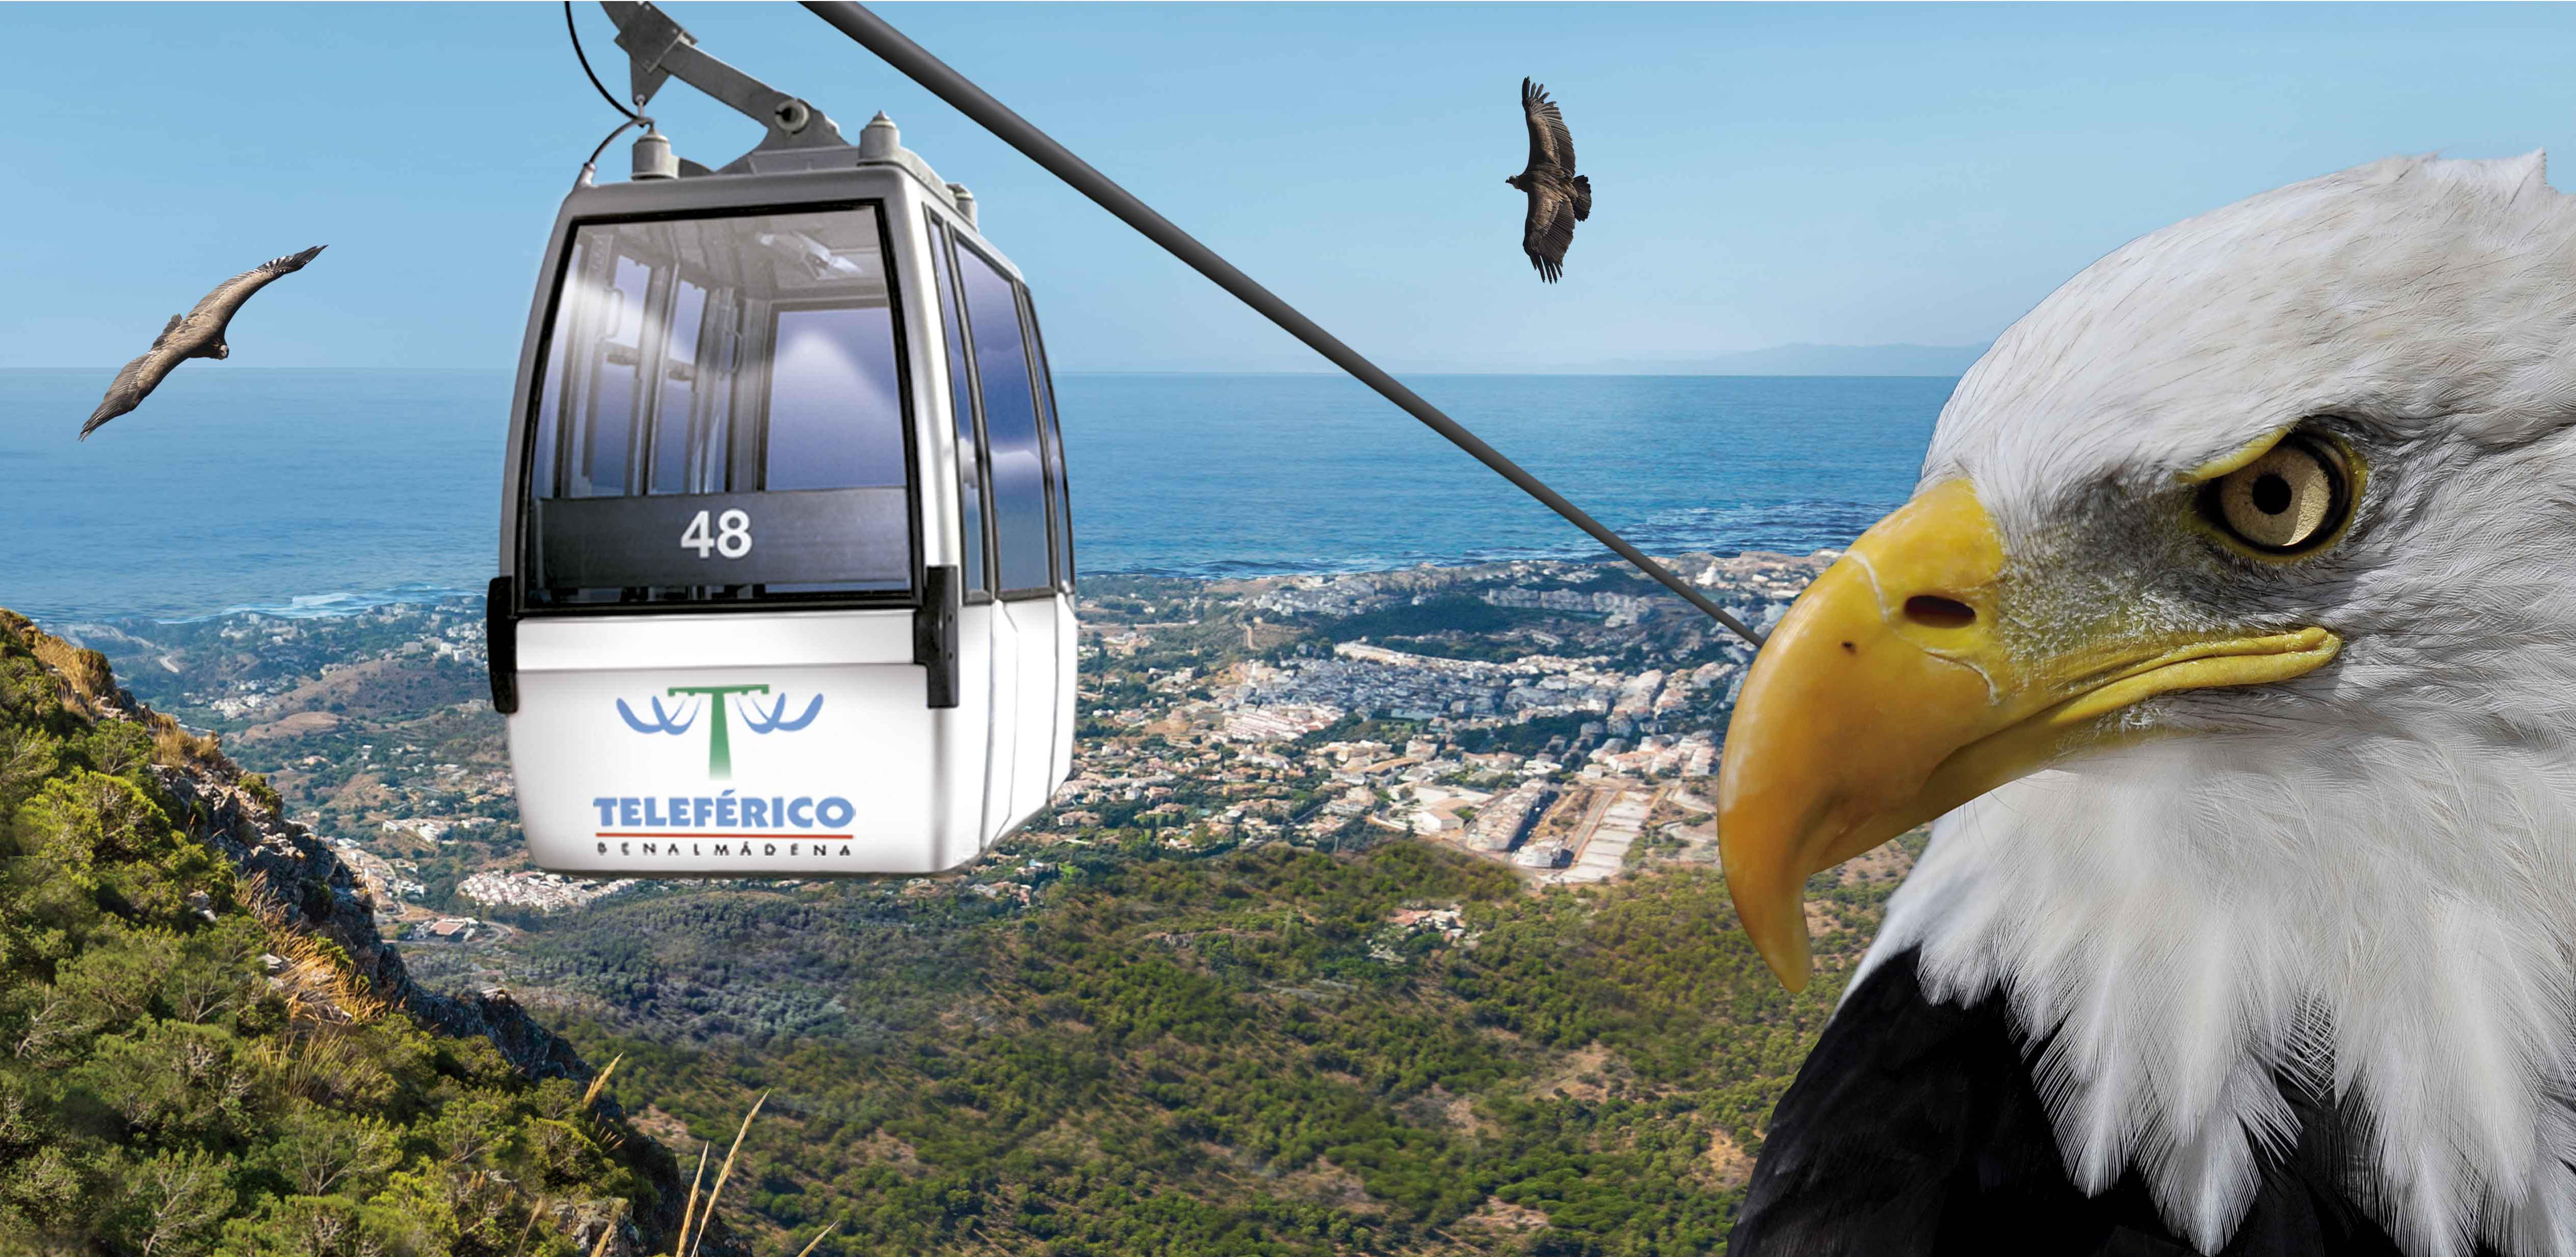 THE 2017 SEASON HAS ALREADY STARTED AT BENALMÁDENA CABLE CAR!